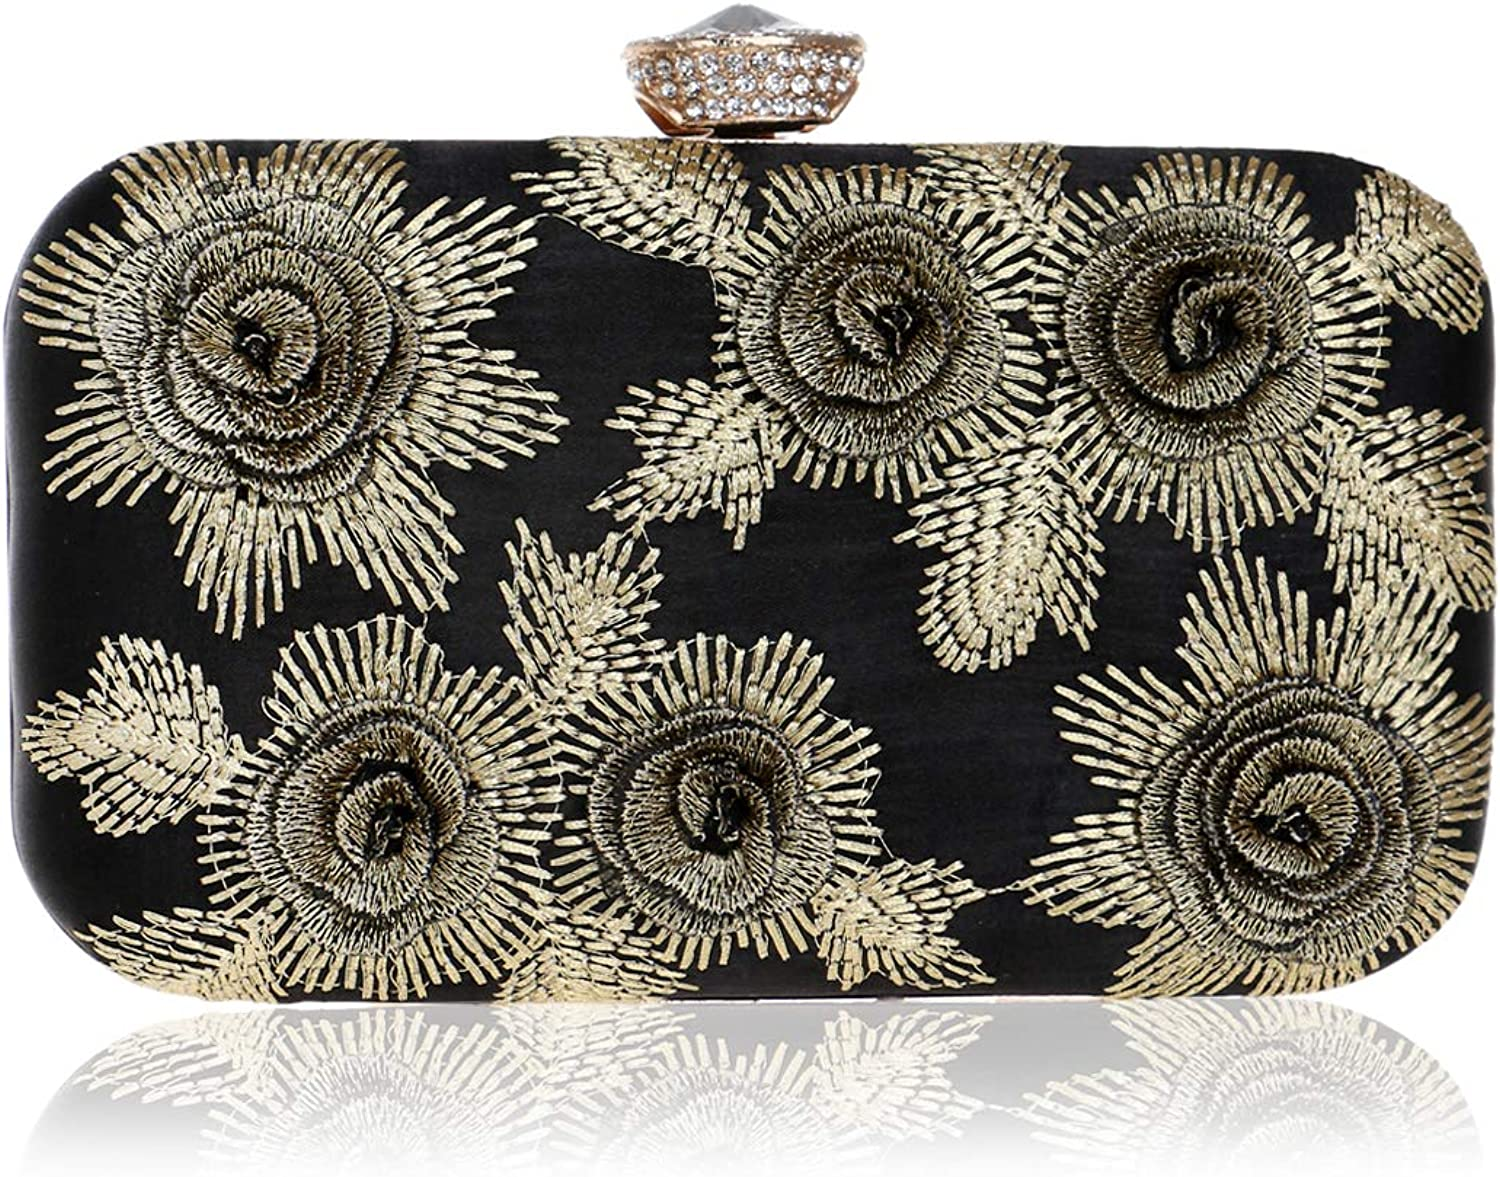 FzYRY Women's Embroidered Flower Tassel Evening Bag, Suitable for Parties, Dinner Occasions